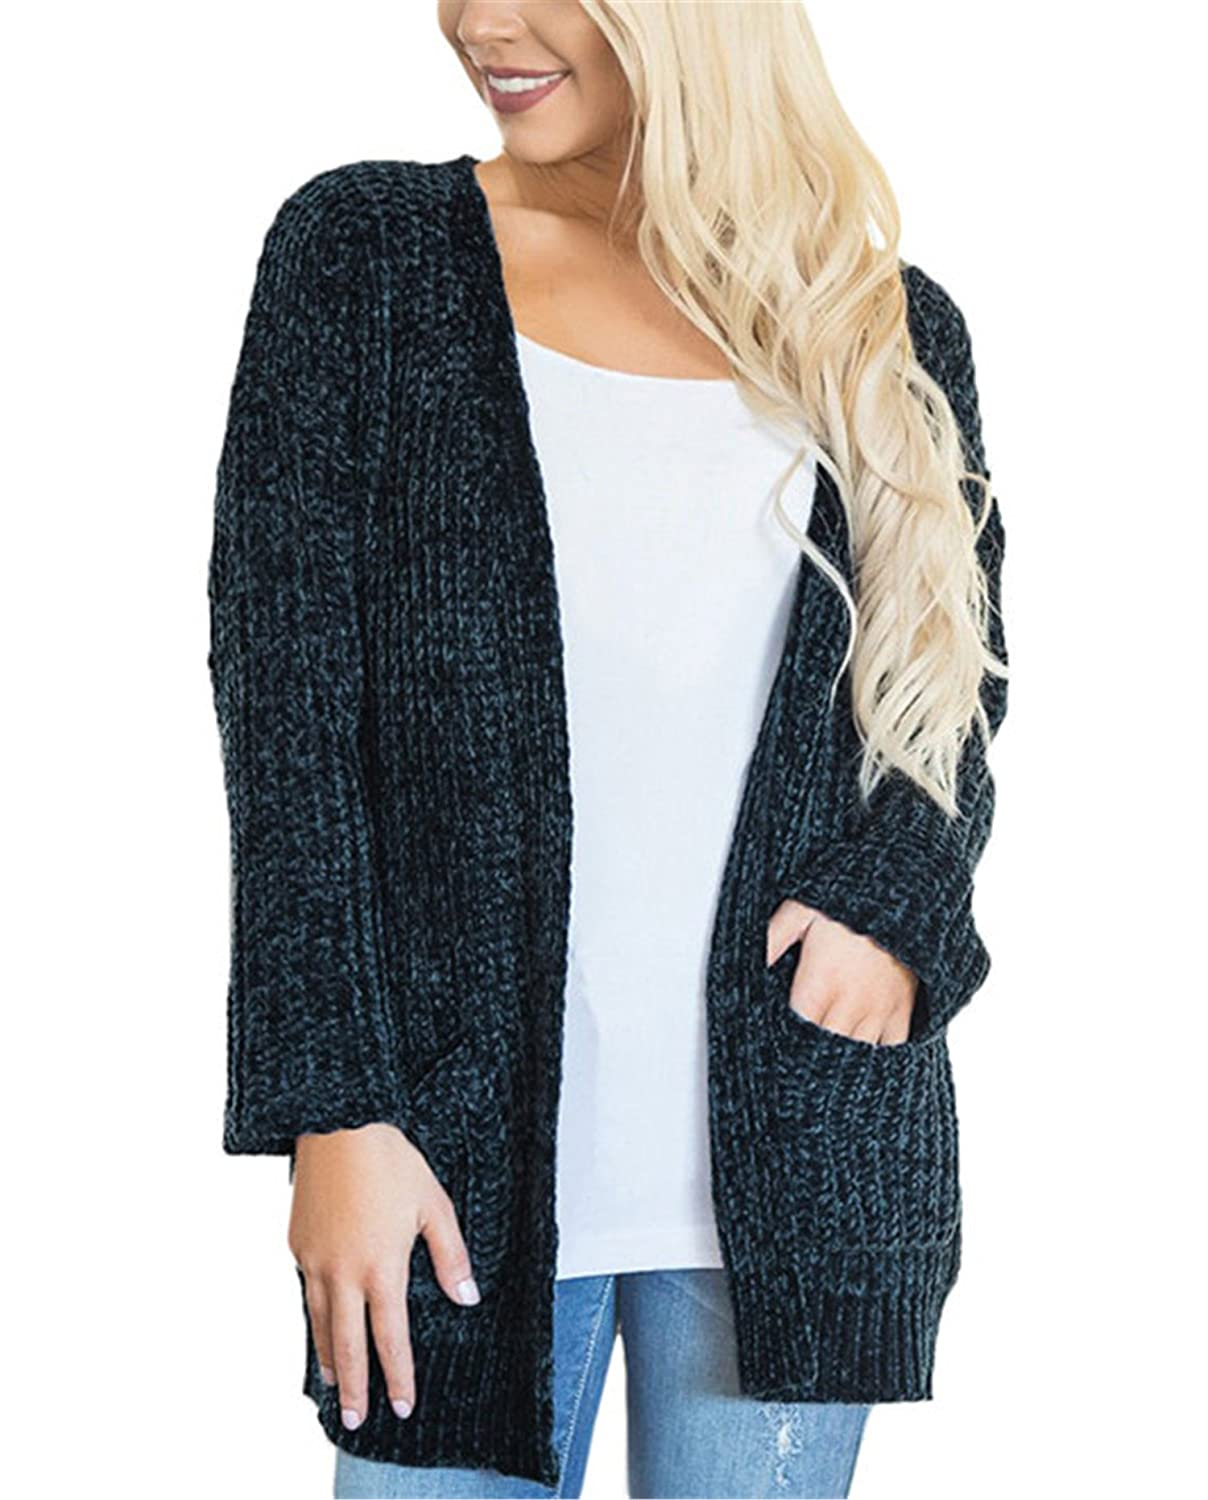 ce9a82d82d6c Top 10 wholesale Cute Chunky Sweaters - Chinabrands.com